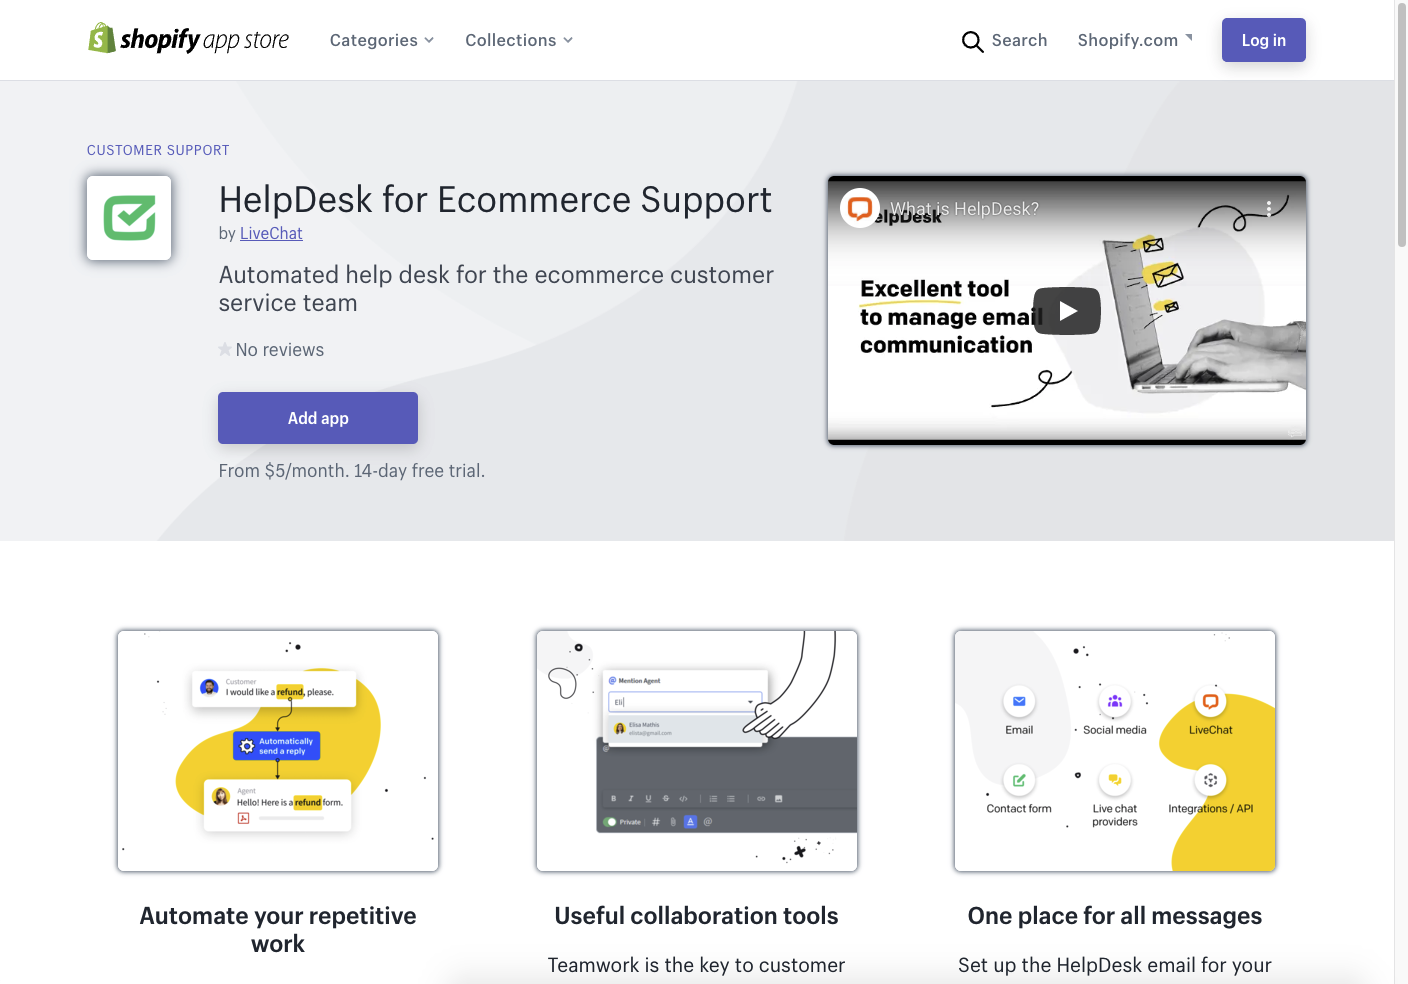 A view of the HelpDesk app in the Shopify App Store.